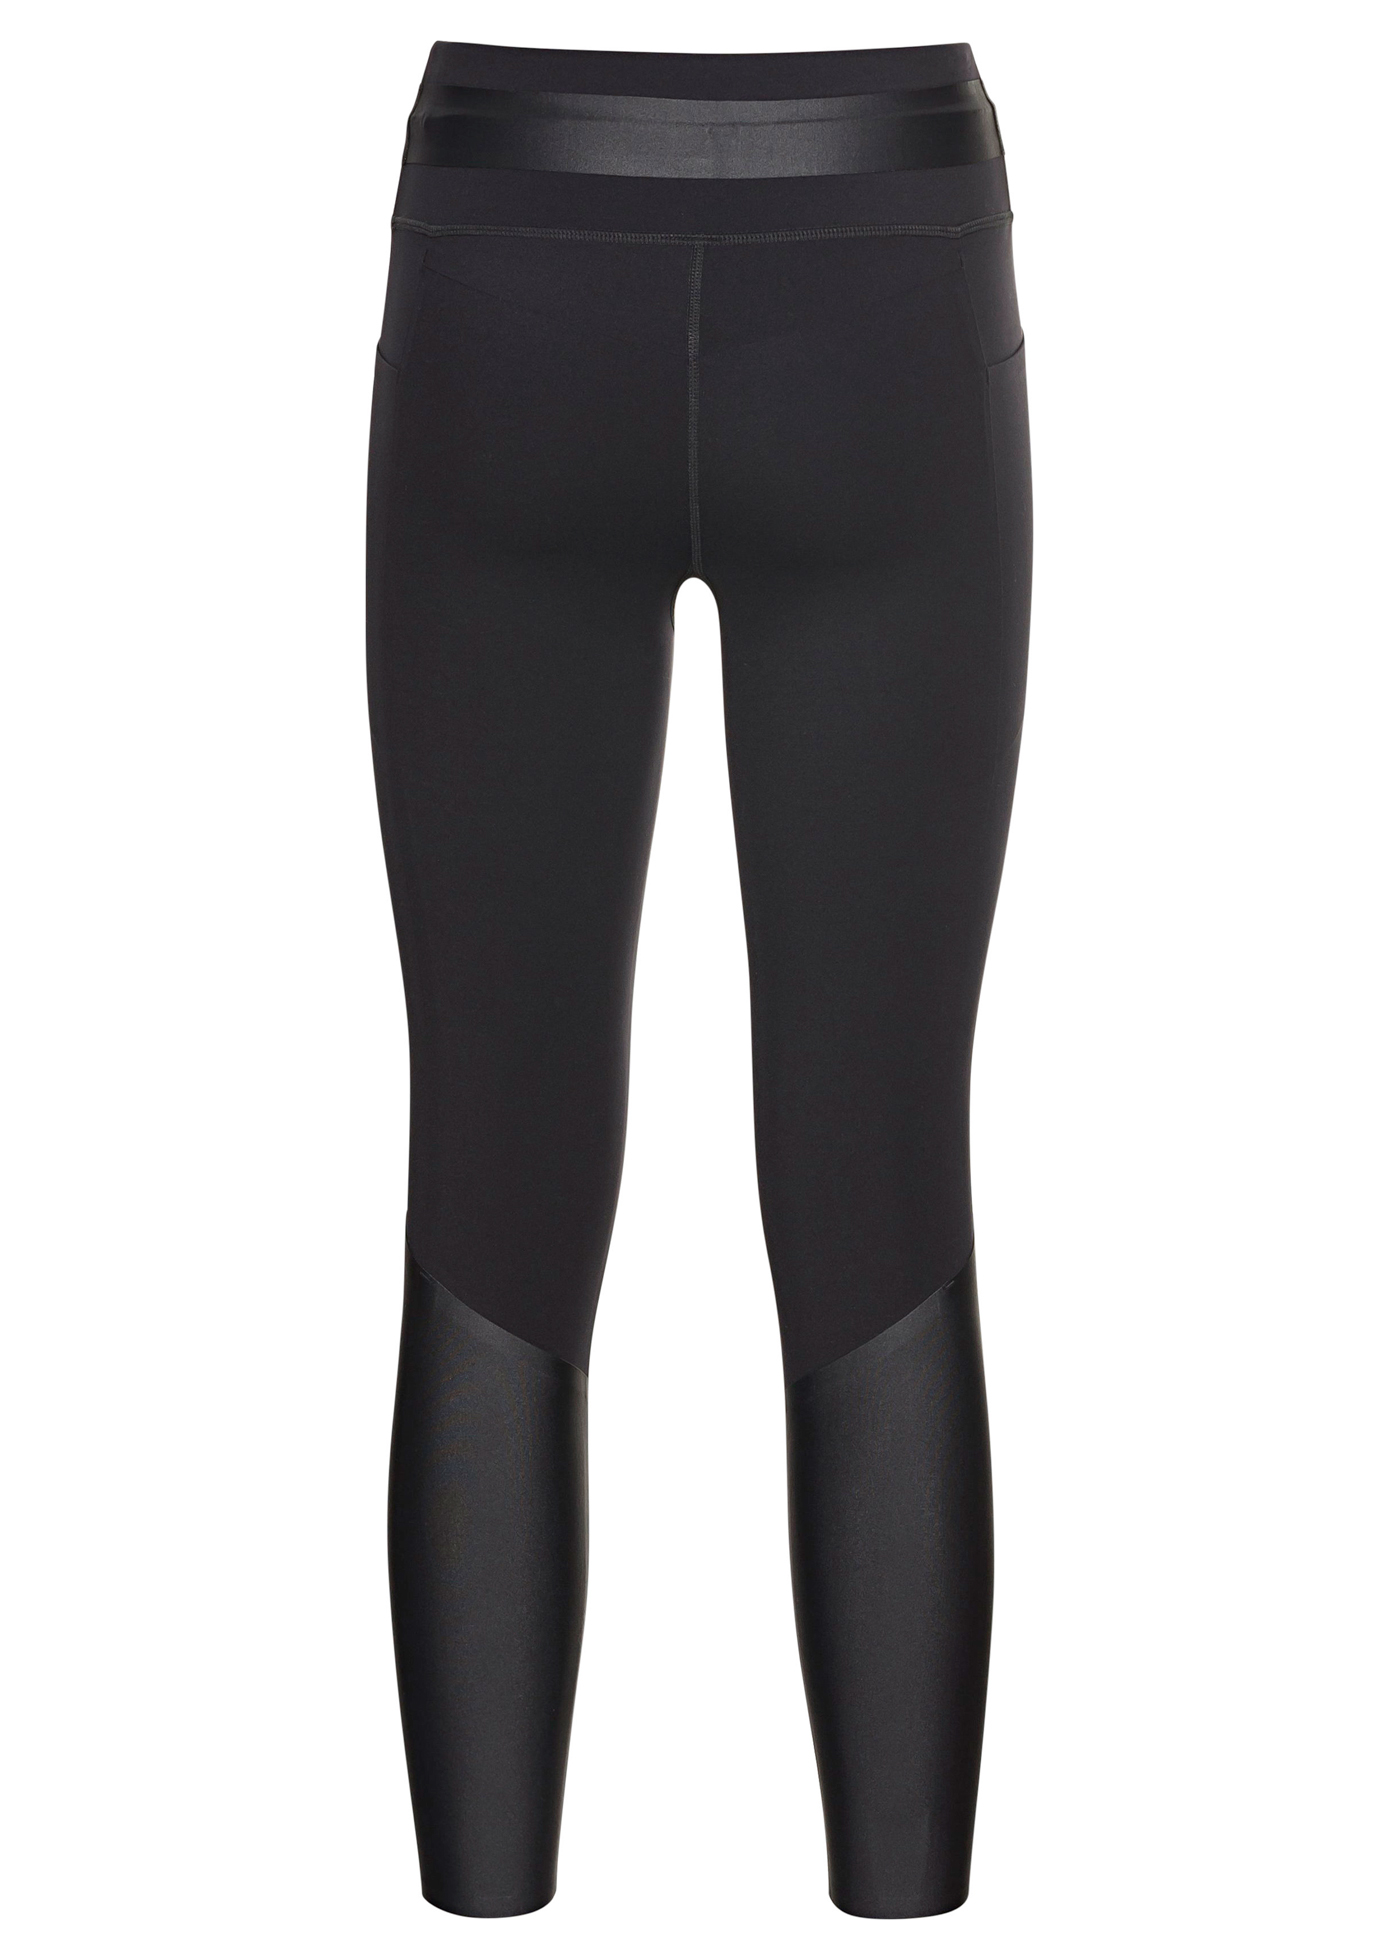 Power Mission High Waist 7/8 Workout Leggings image number 1